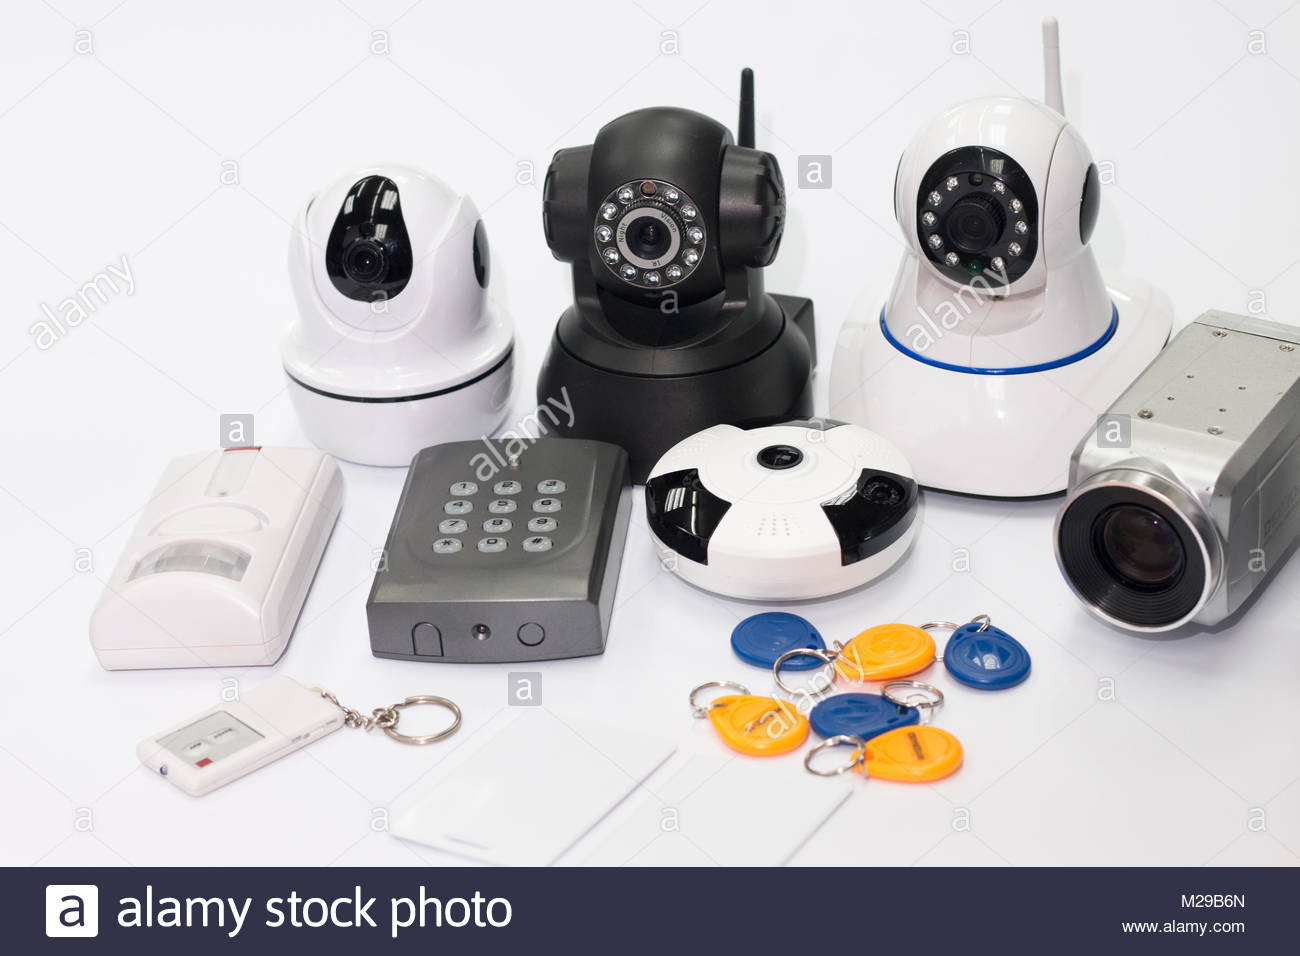 Security Equipment and Technology - Stock Image